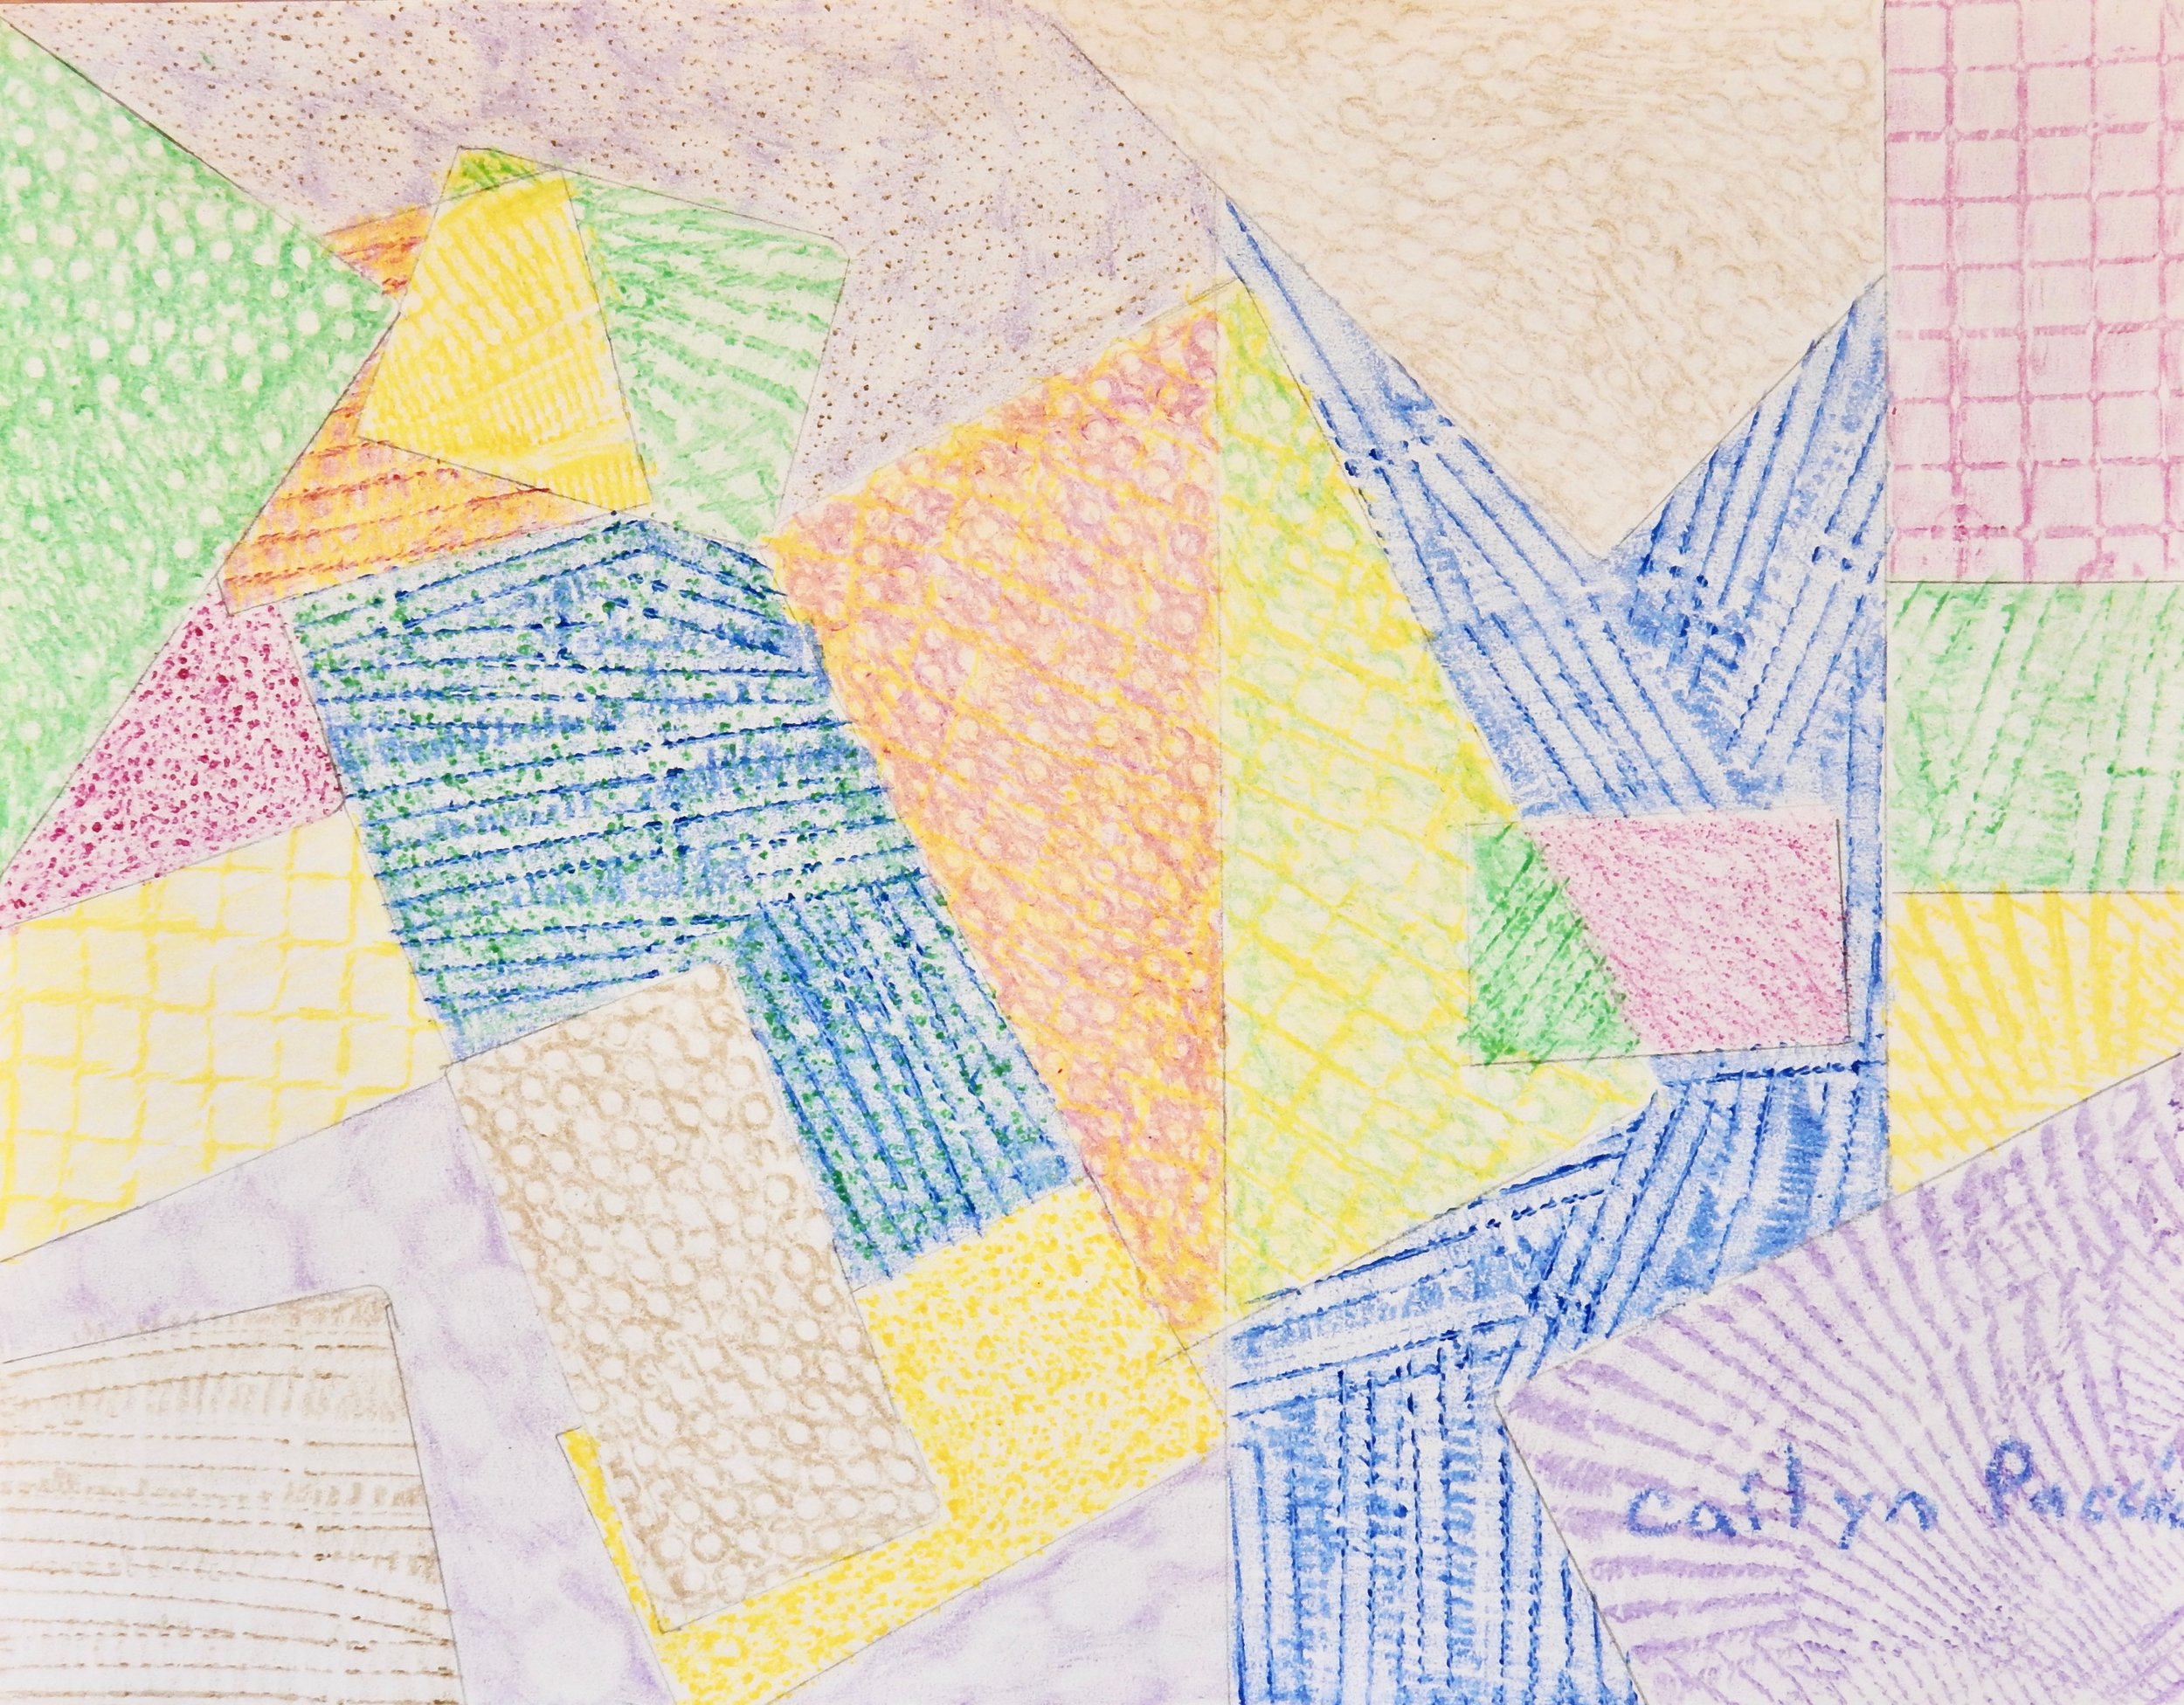 Cailyn Paccico.11yrs.crayon rubbing